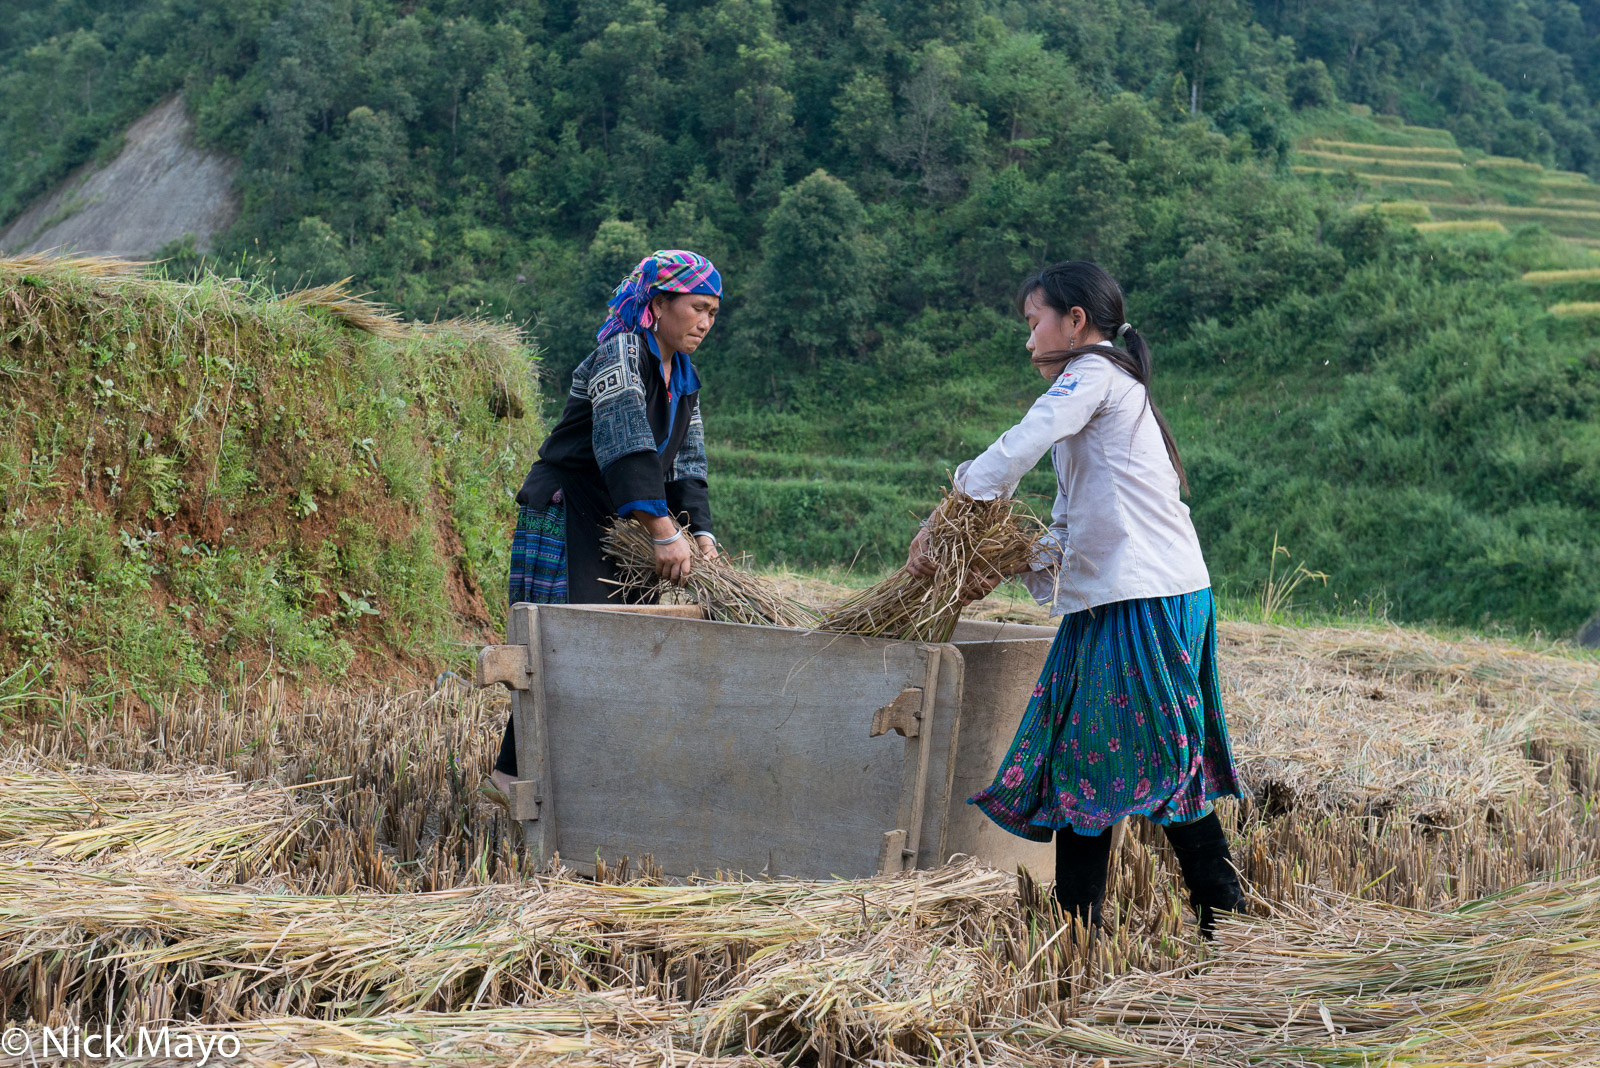 Two Blue Hmong women hand threshing paddy rice in the Mu Cang Chai valley.